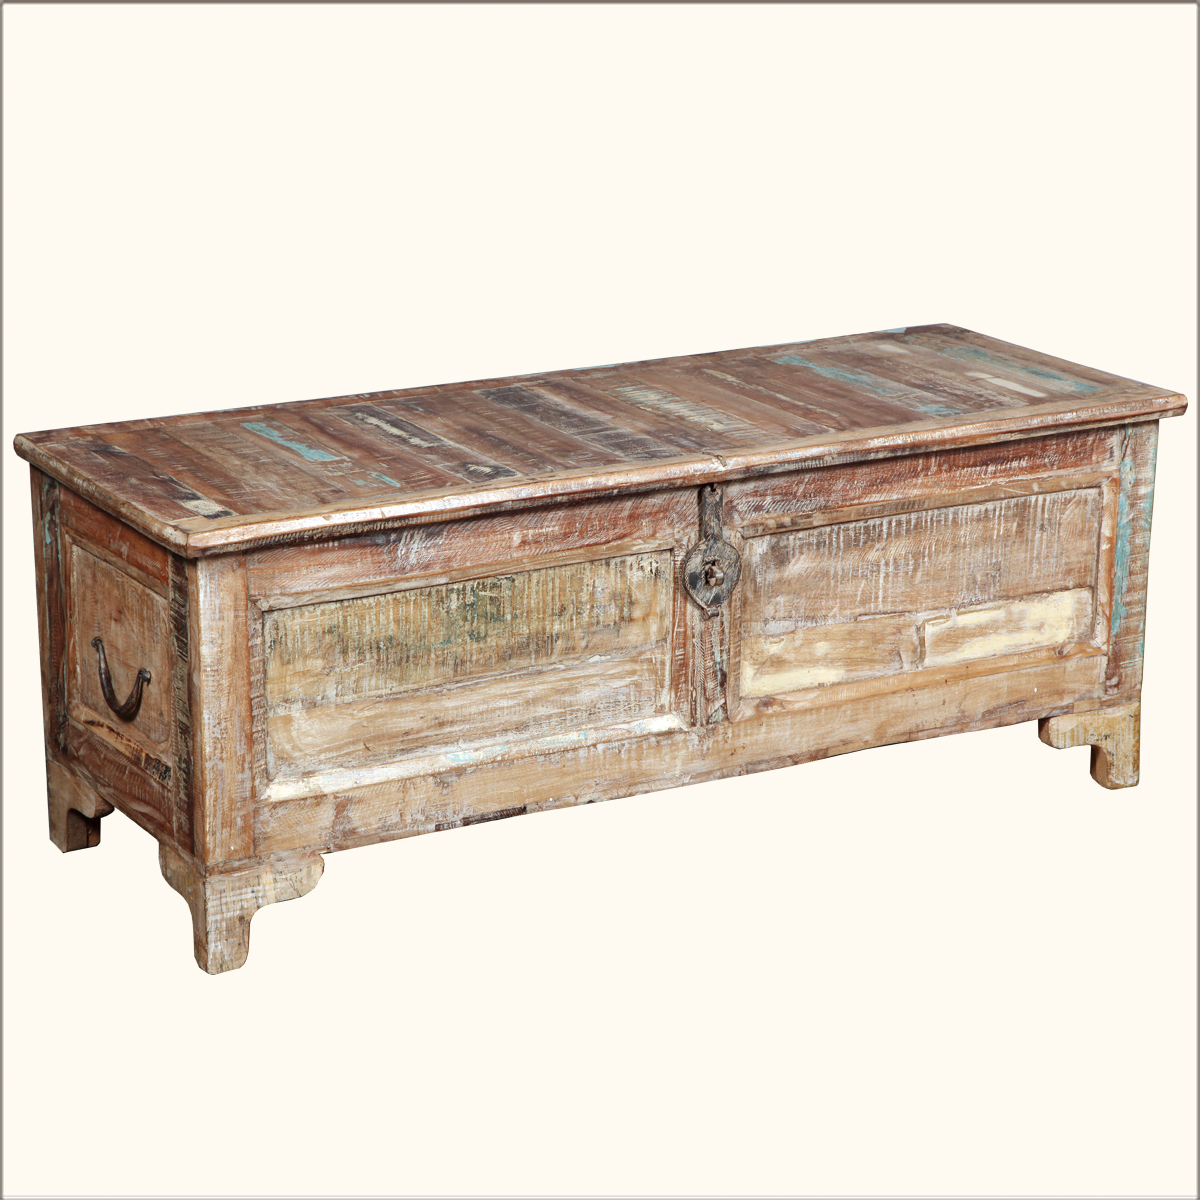 Rustic Reclaimed Wood Storage Blanket Box Coffee Table Chest Trunk